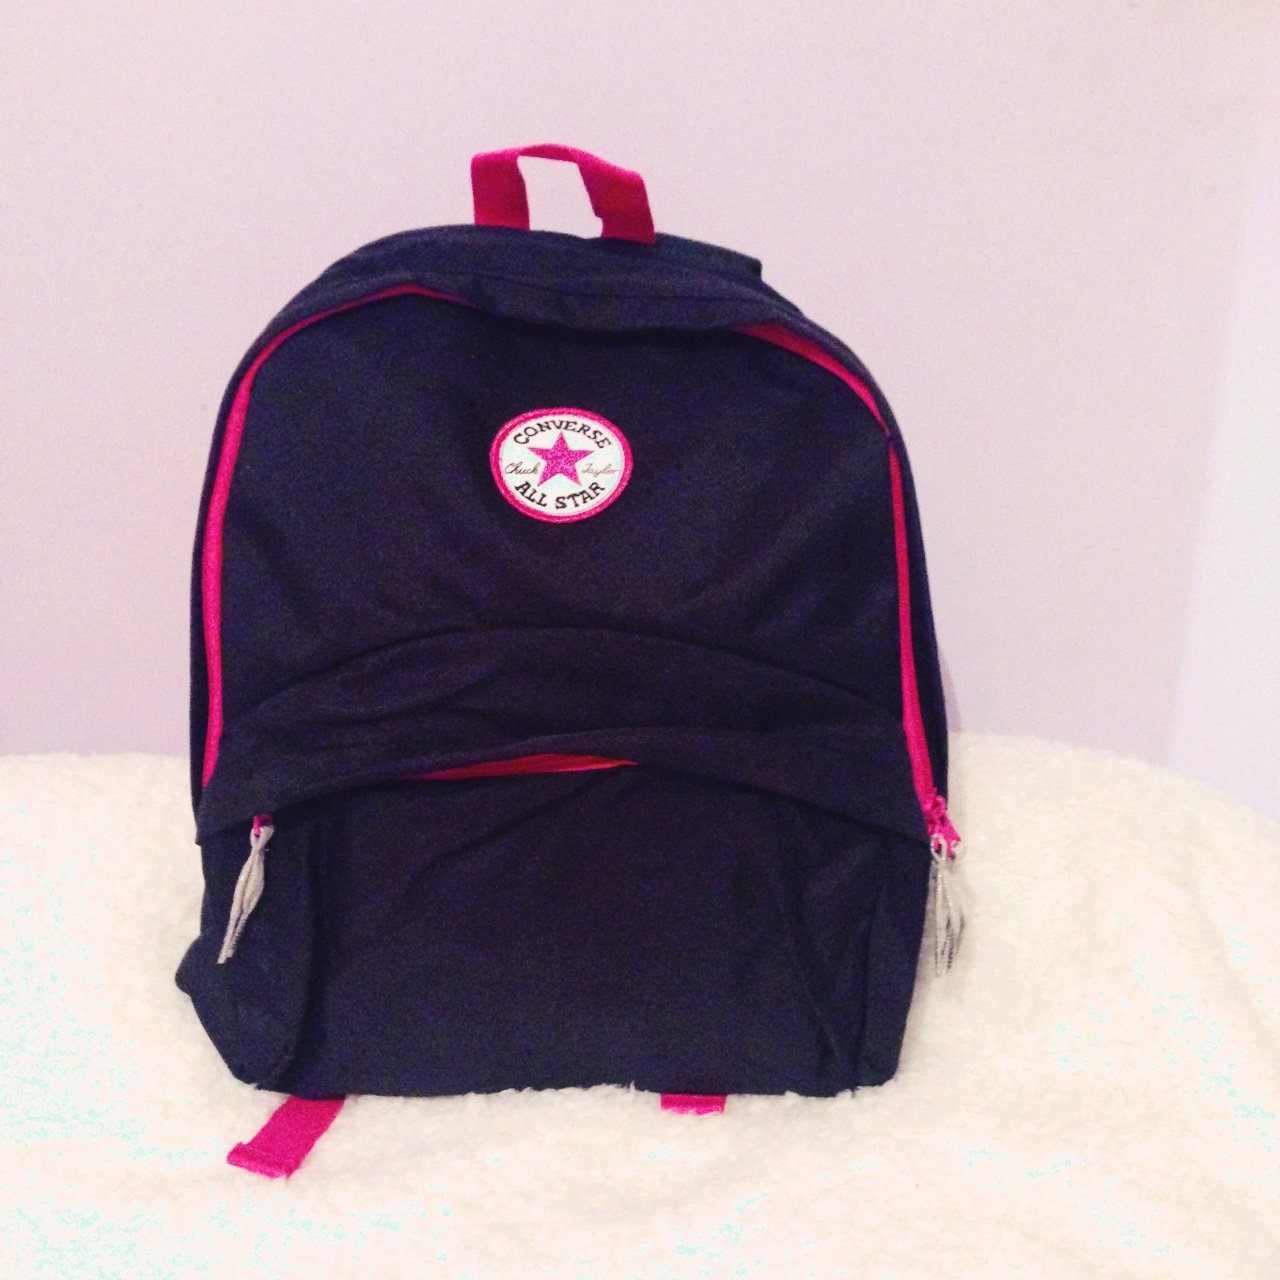 c4439e6100 All Star Converse rucksack. Never used and still with paid - Depop